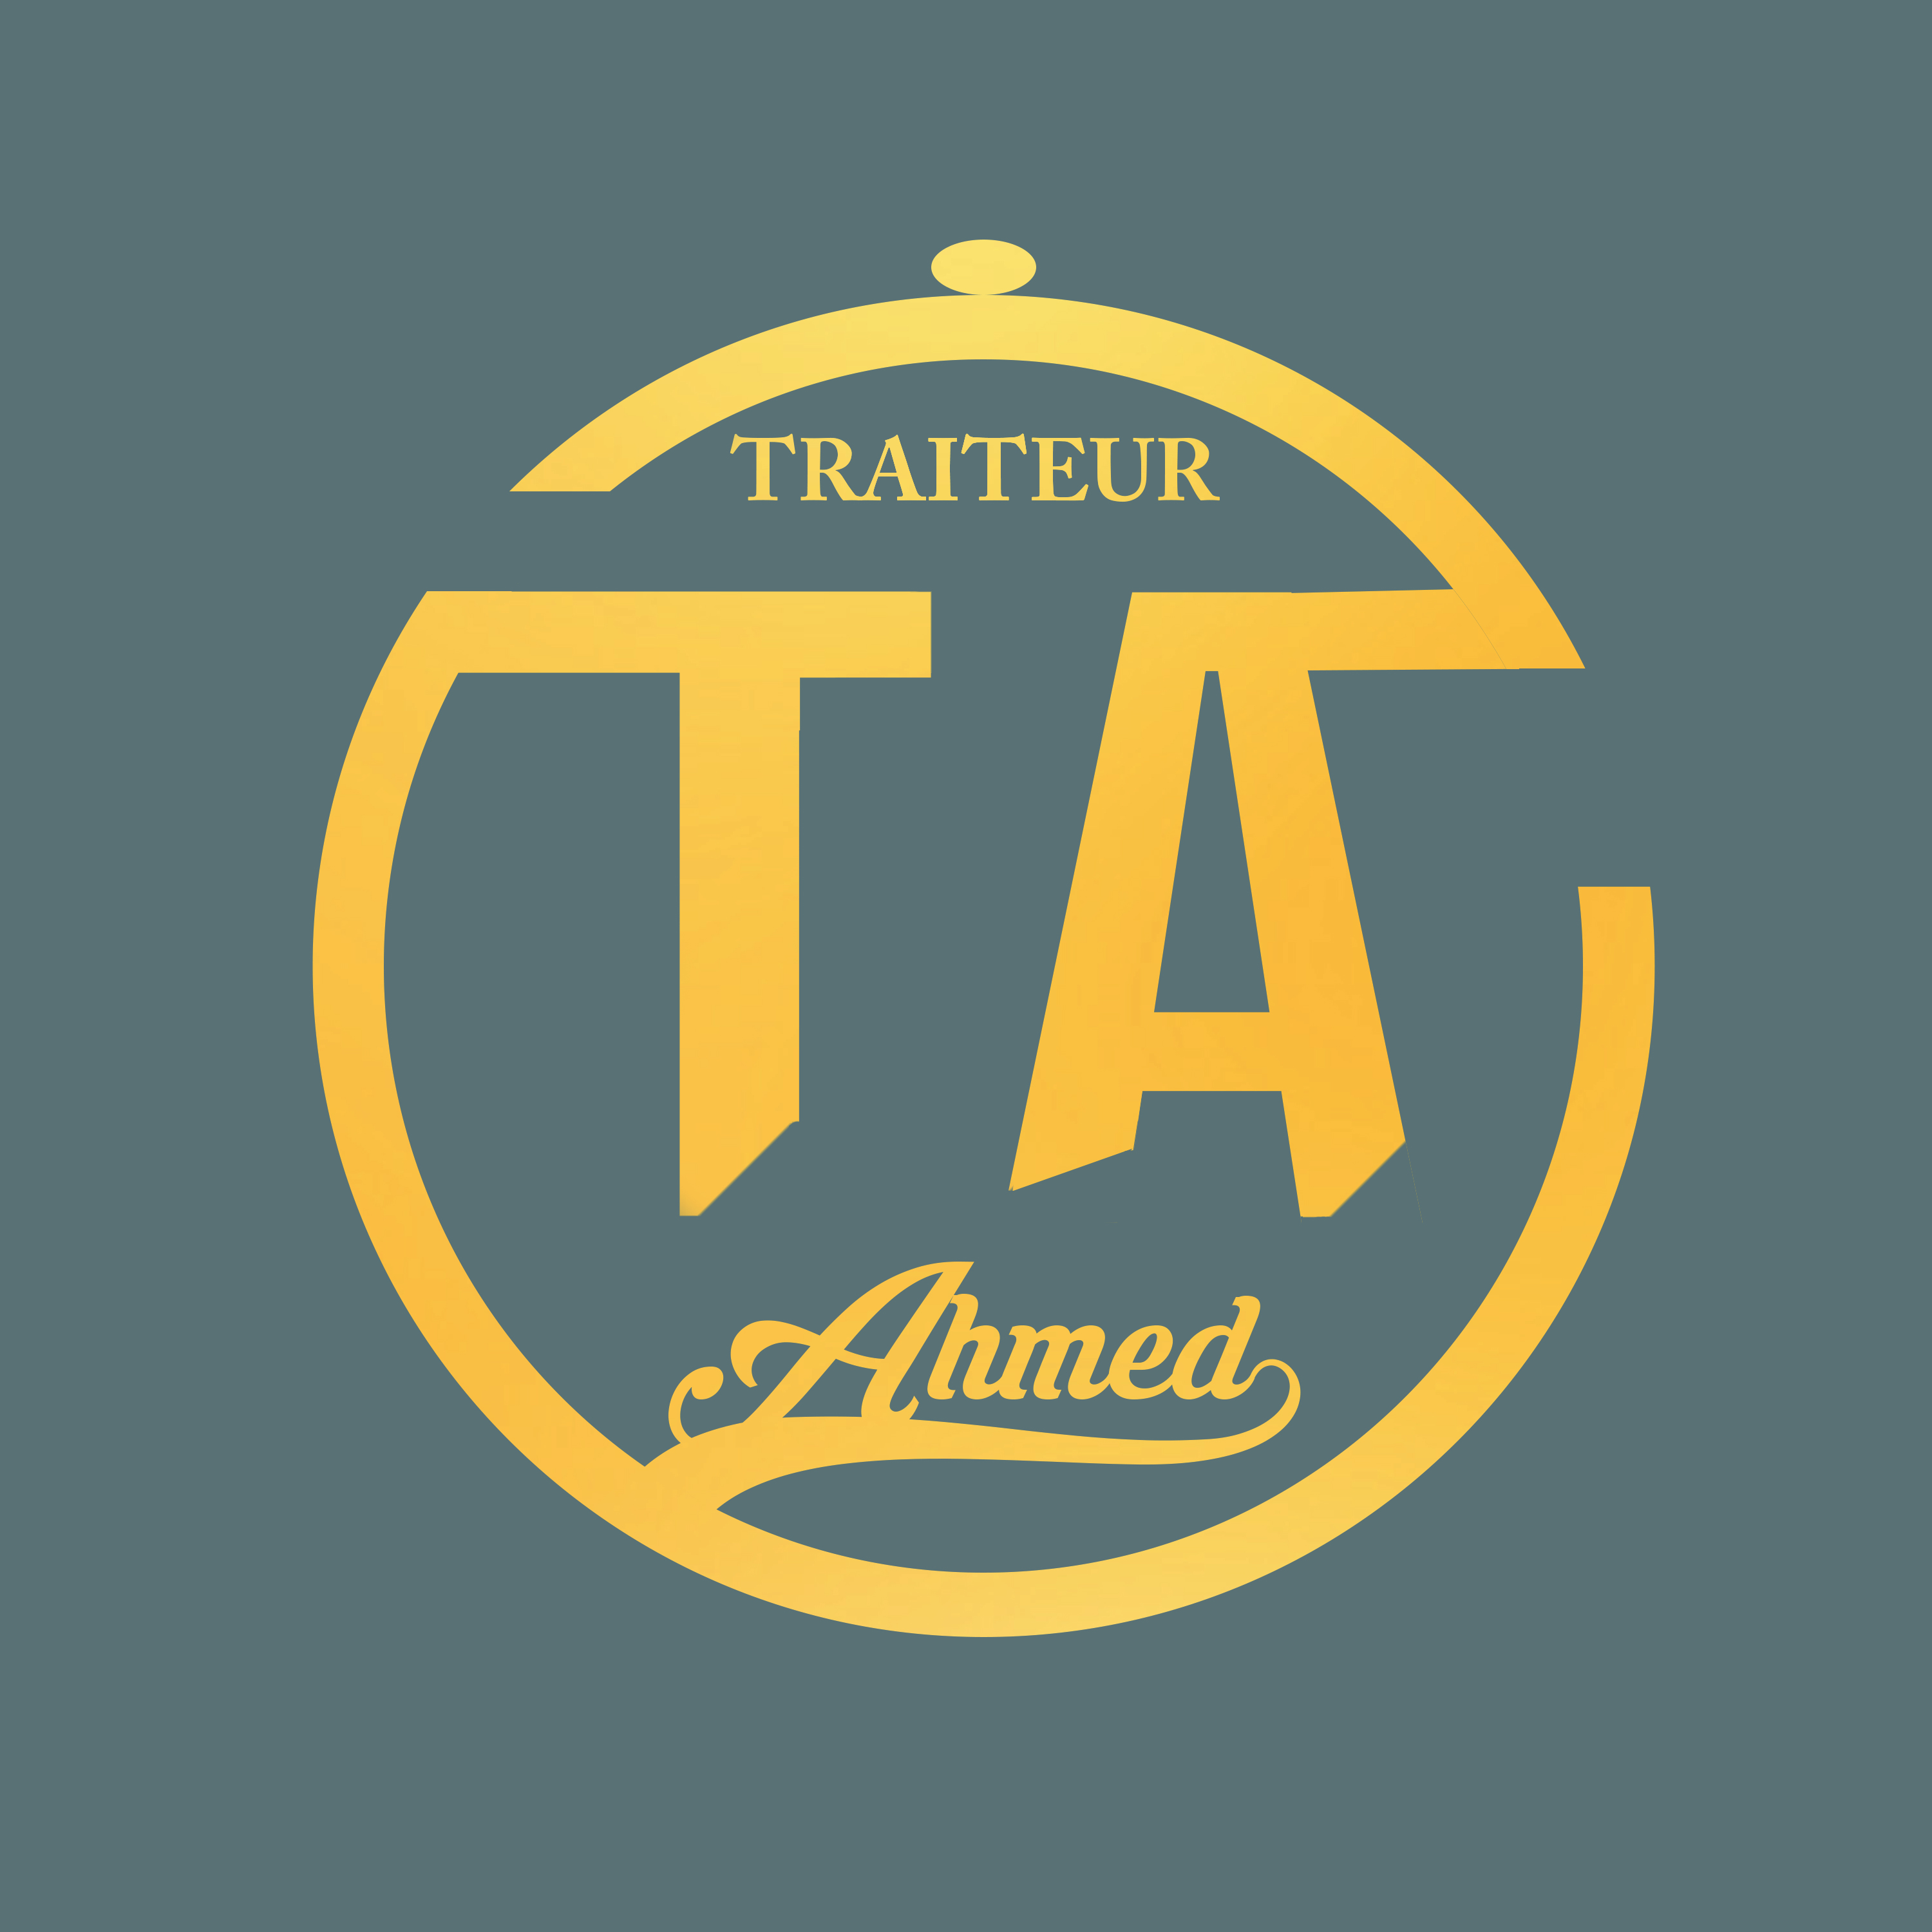 traiteur logo motivate me to continue with that